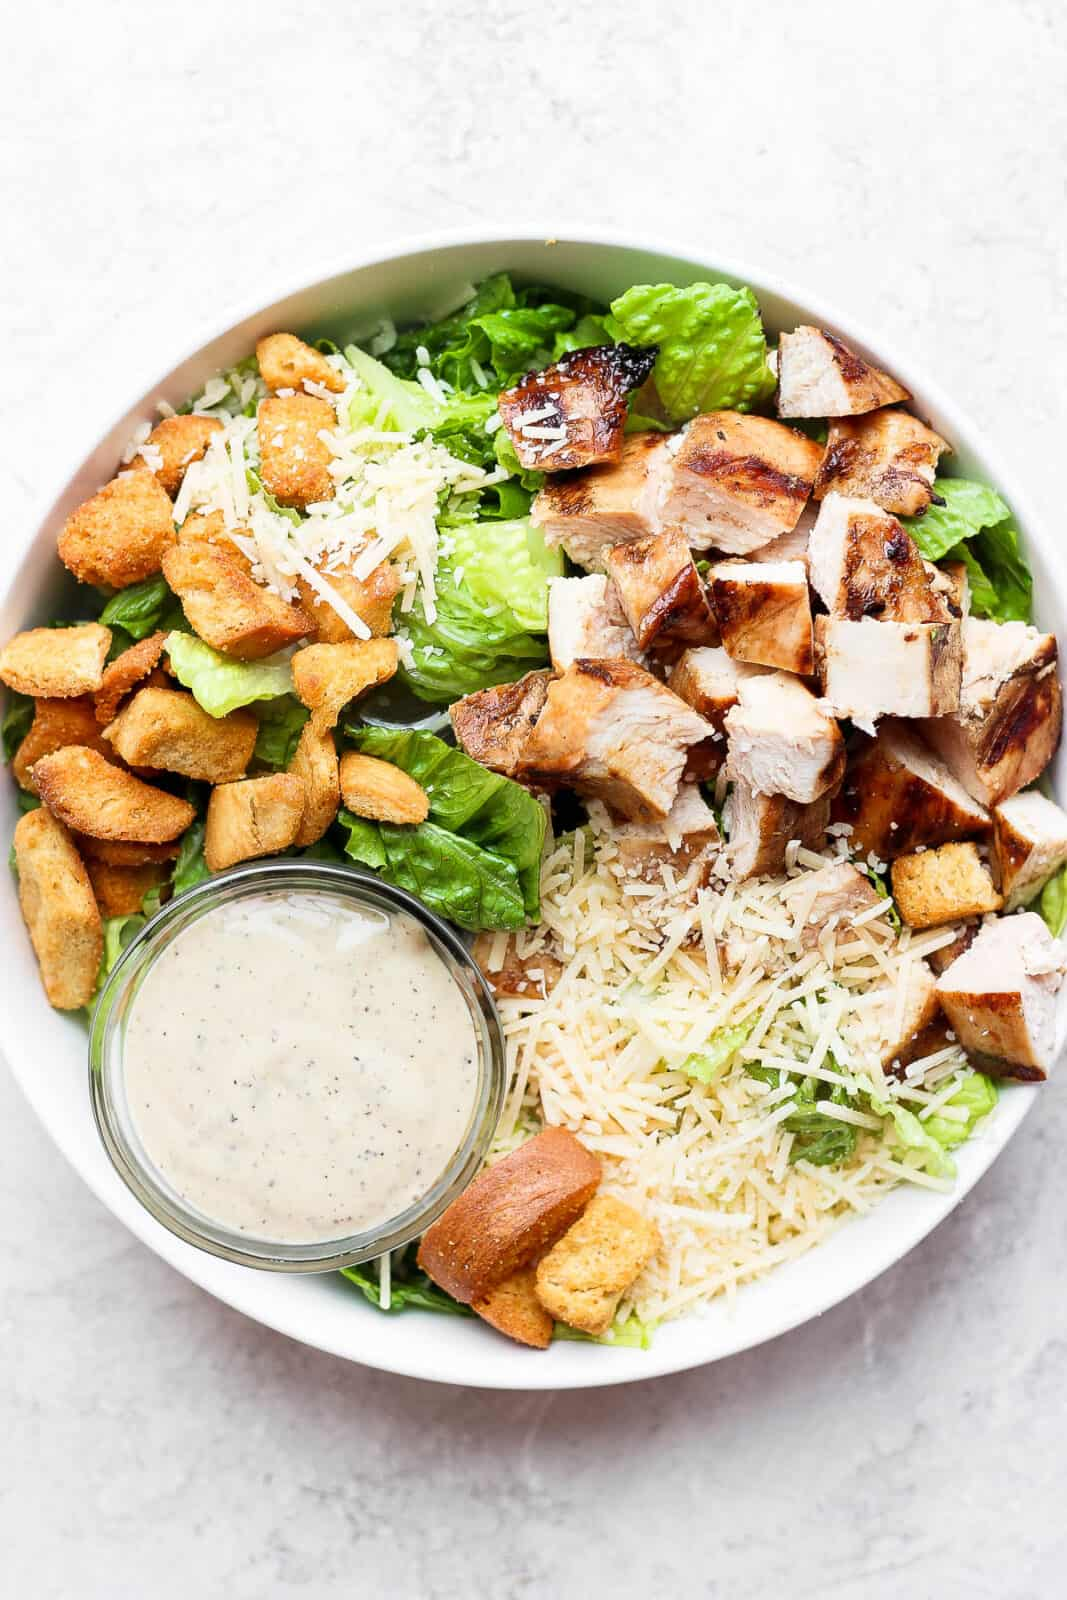 A bowl of grilled chicken caesar salad with a small dish of dressing.